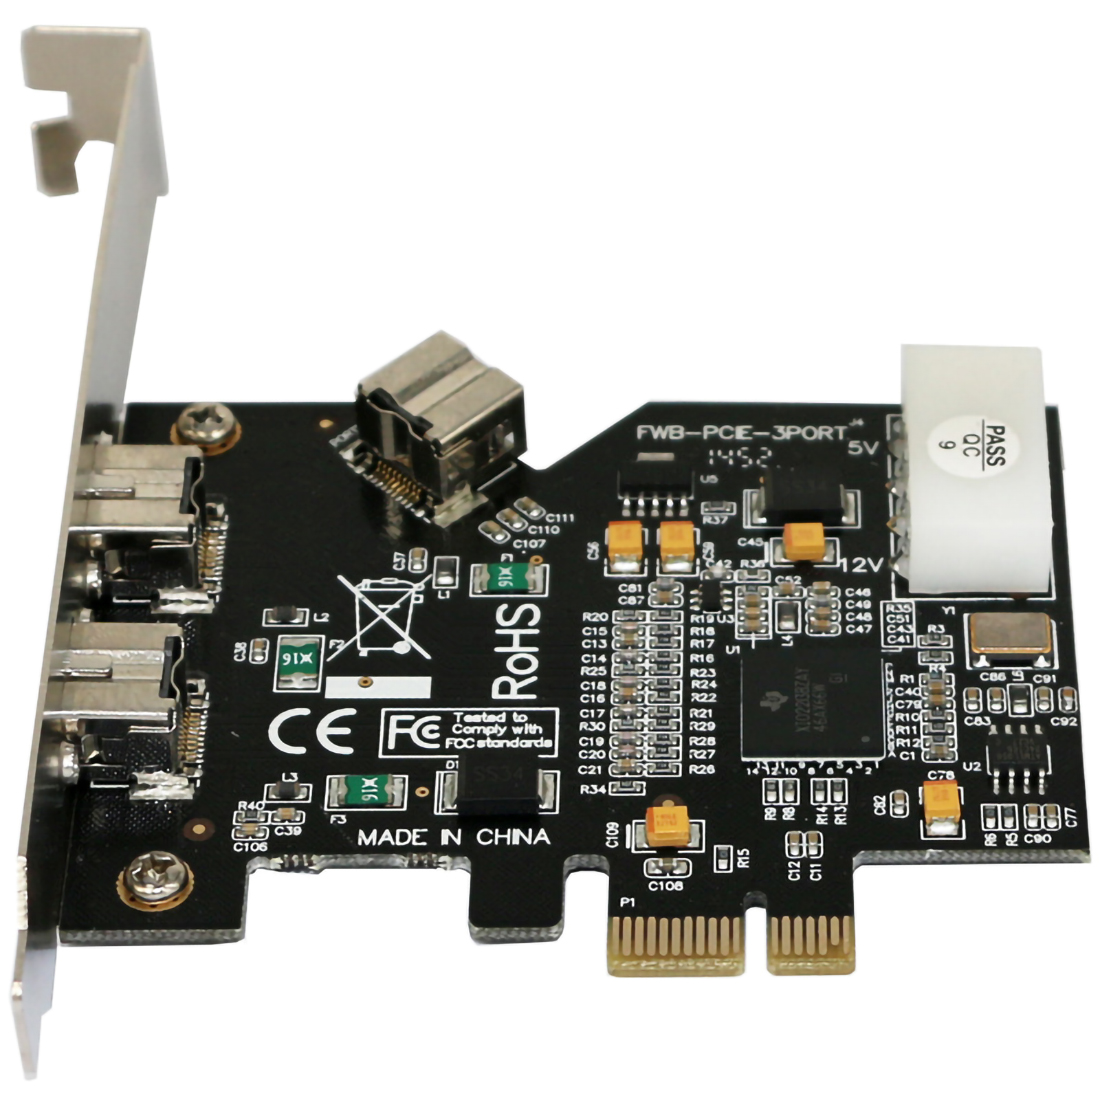 PCI Express PCI-E X1 To 3 Ports 1394B Controller Card Add On Card For FireWire 800 IEEE 1394 B 2+1 Digital Camera Video Capture